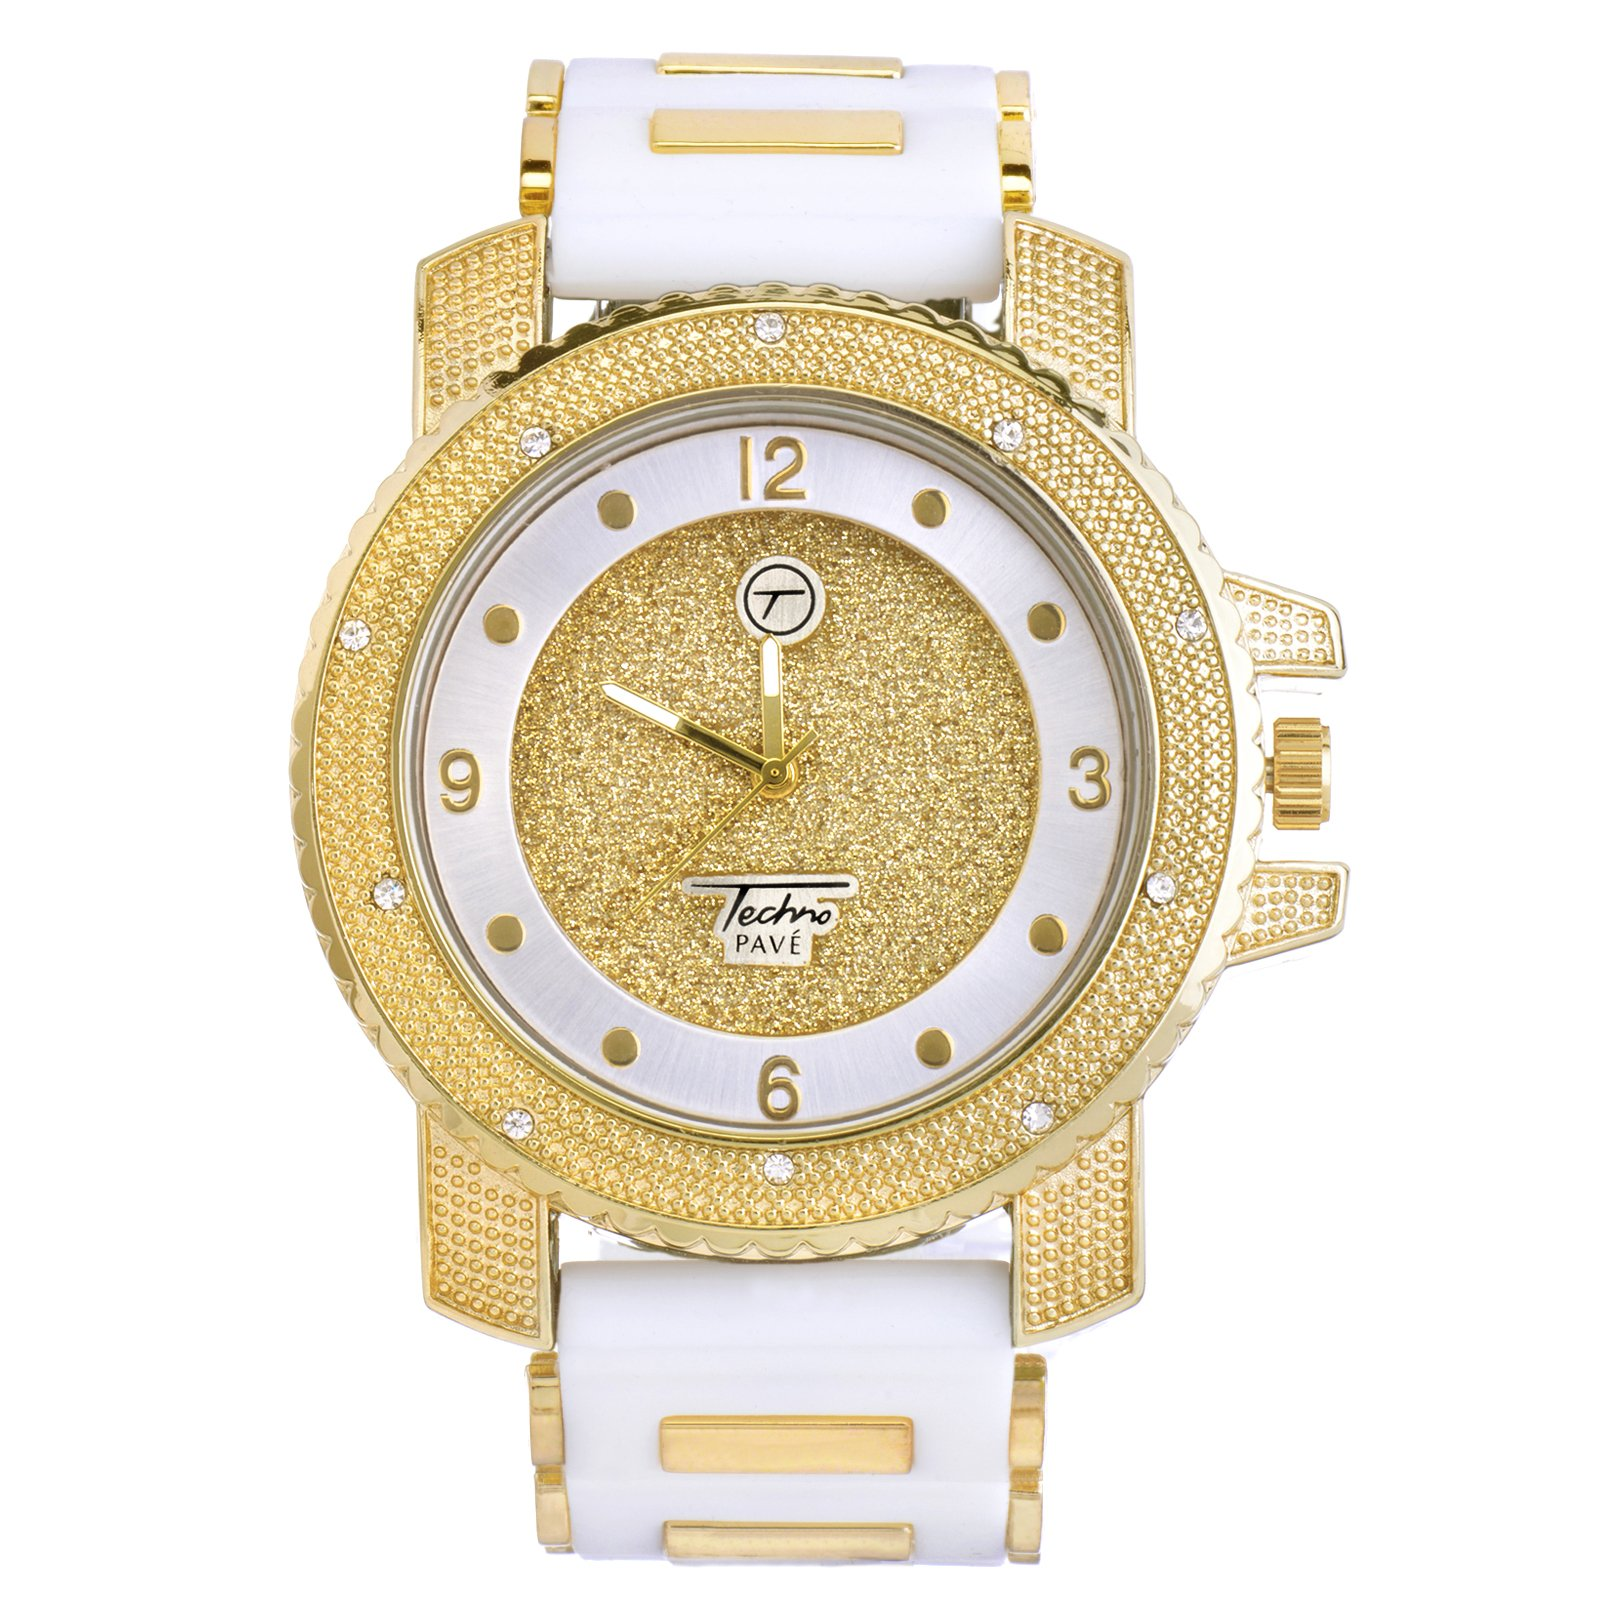 METALTREE98 Men's Fashion Hip Hop Analog Iced Out Heavy White Silicone Band Watch WR 7758 (Gold Toned) by METALTREE98 (Image #1)